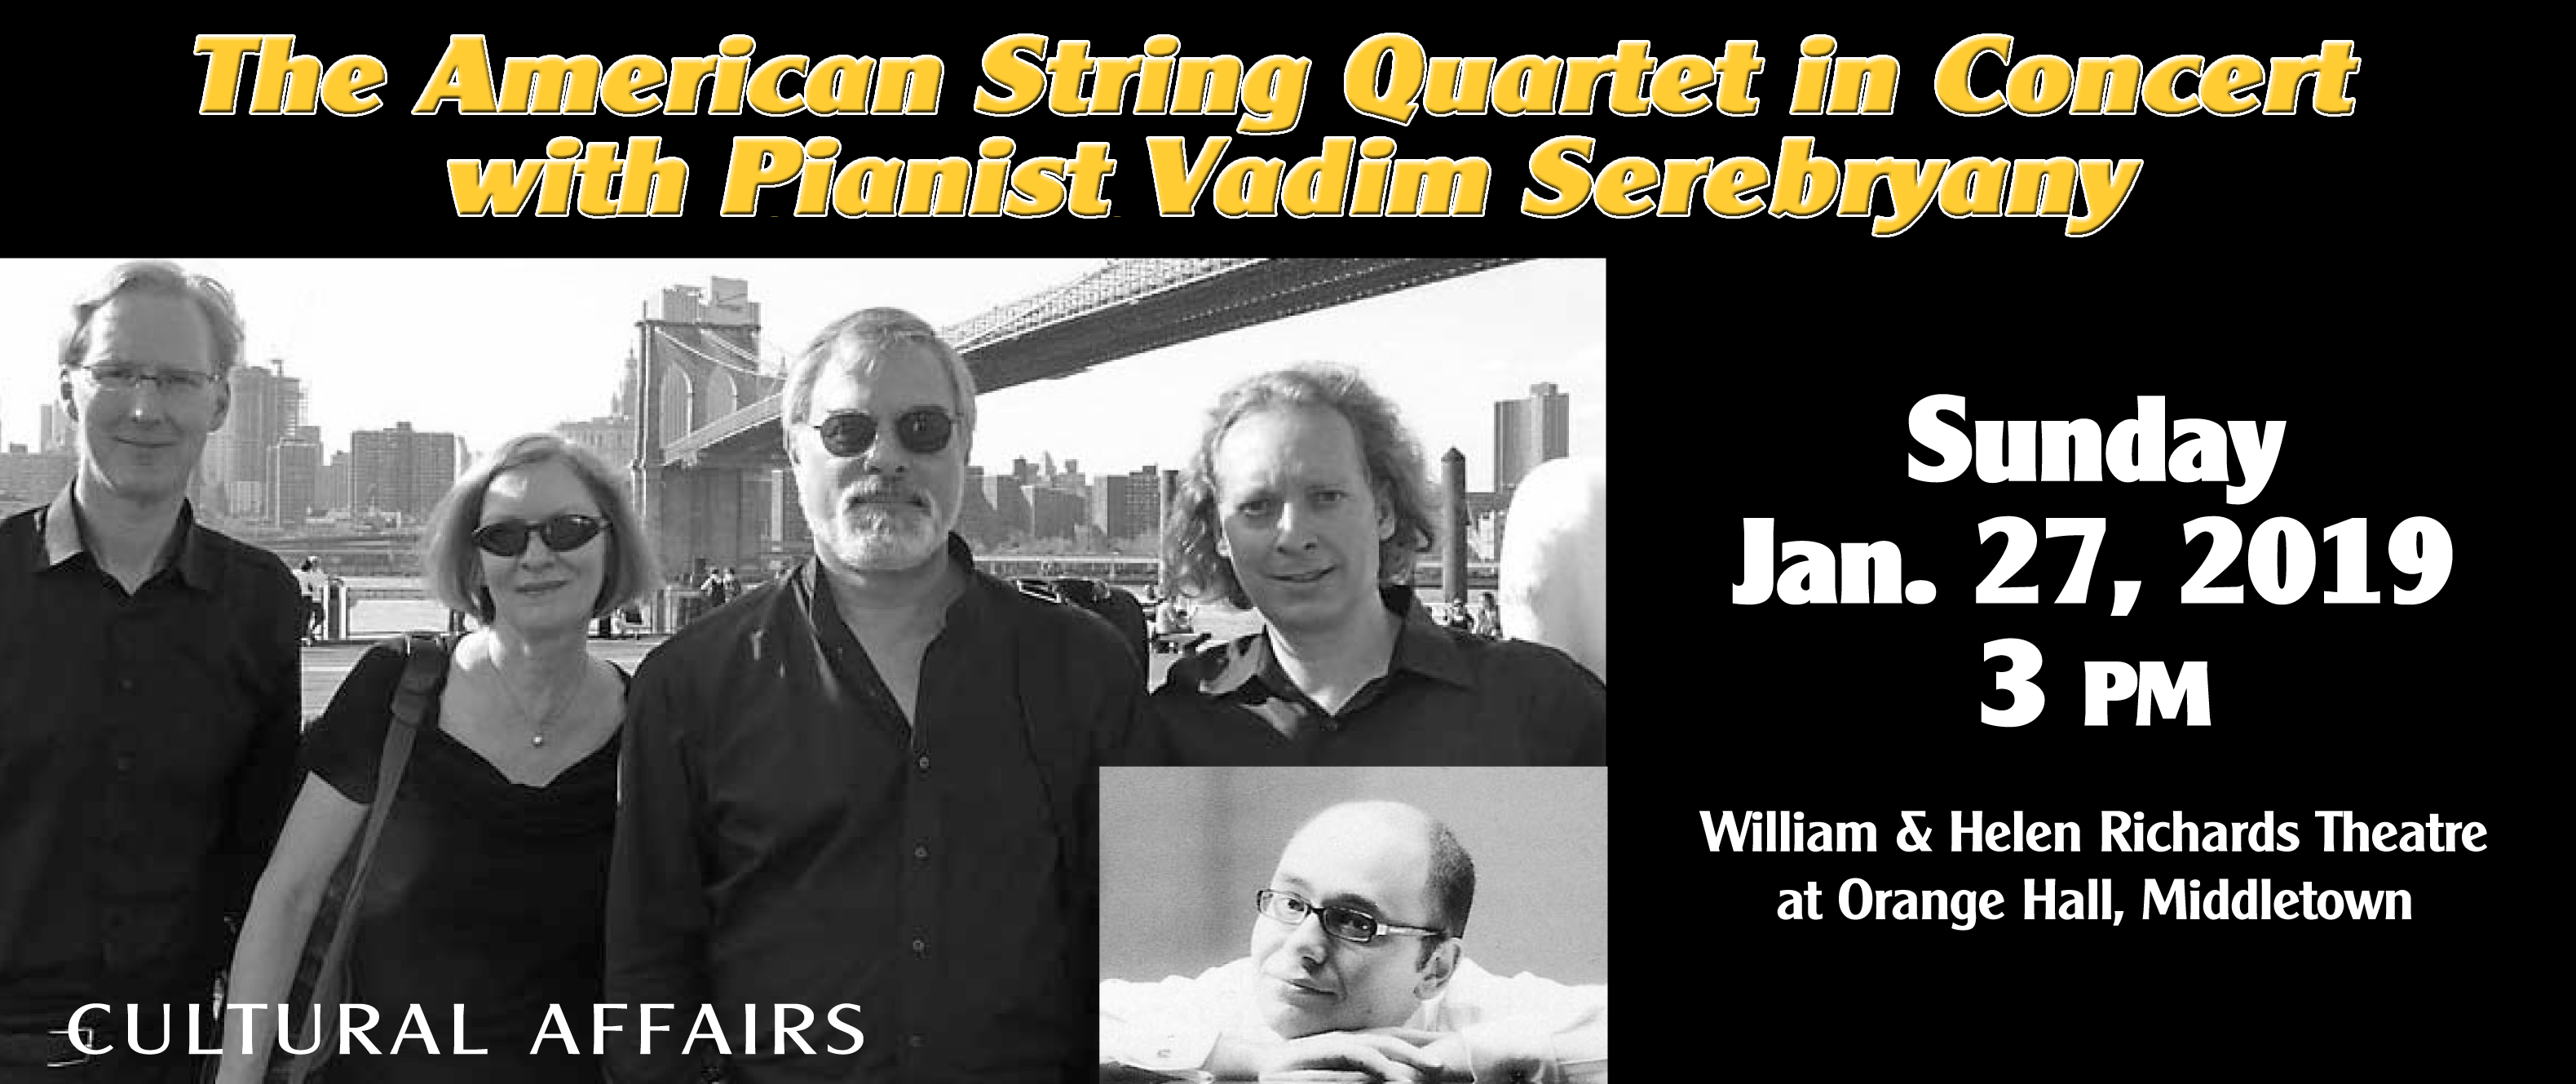 The American String Quartet in Concert with Pianis